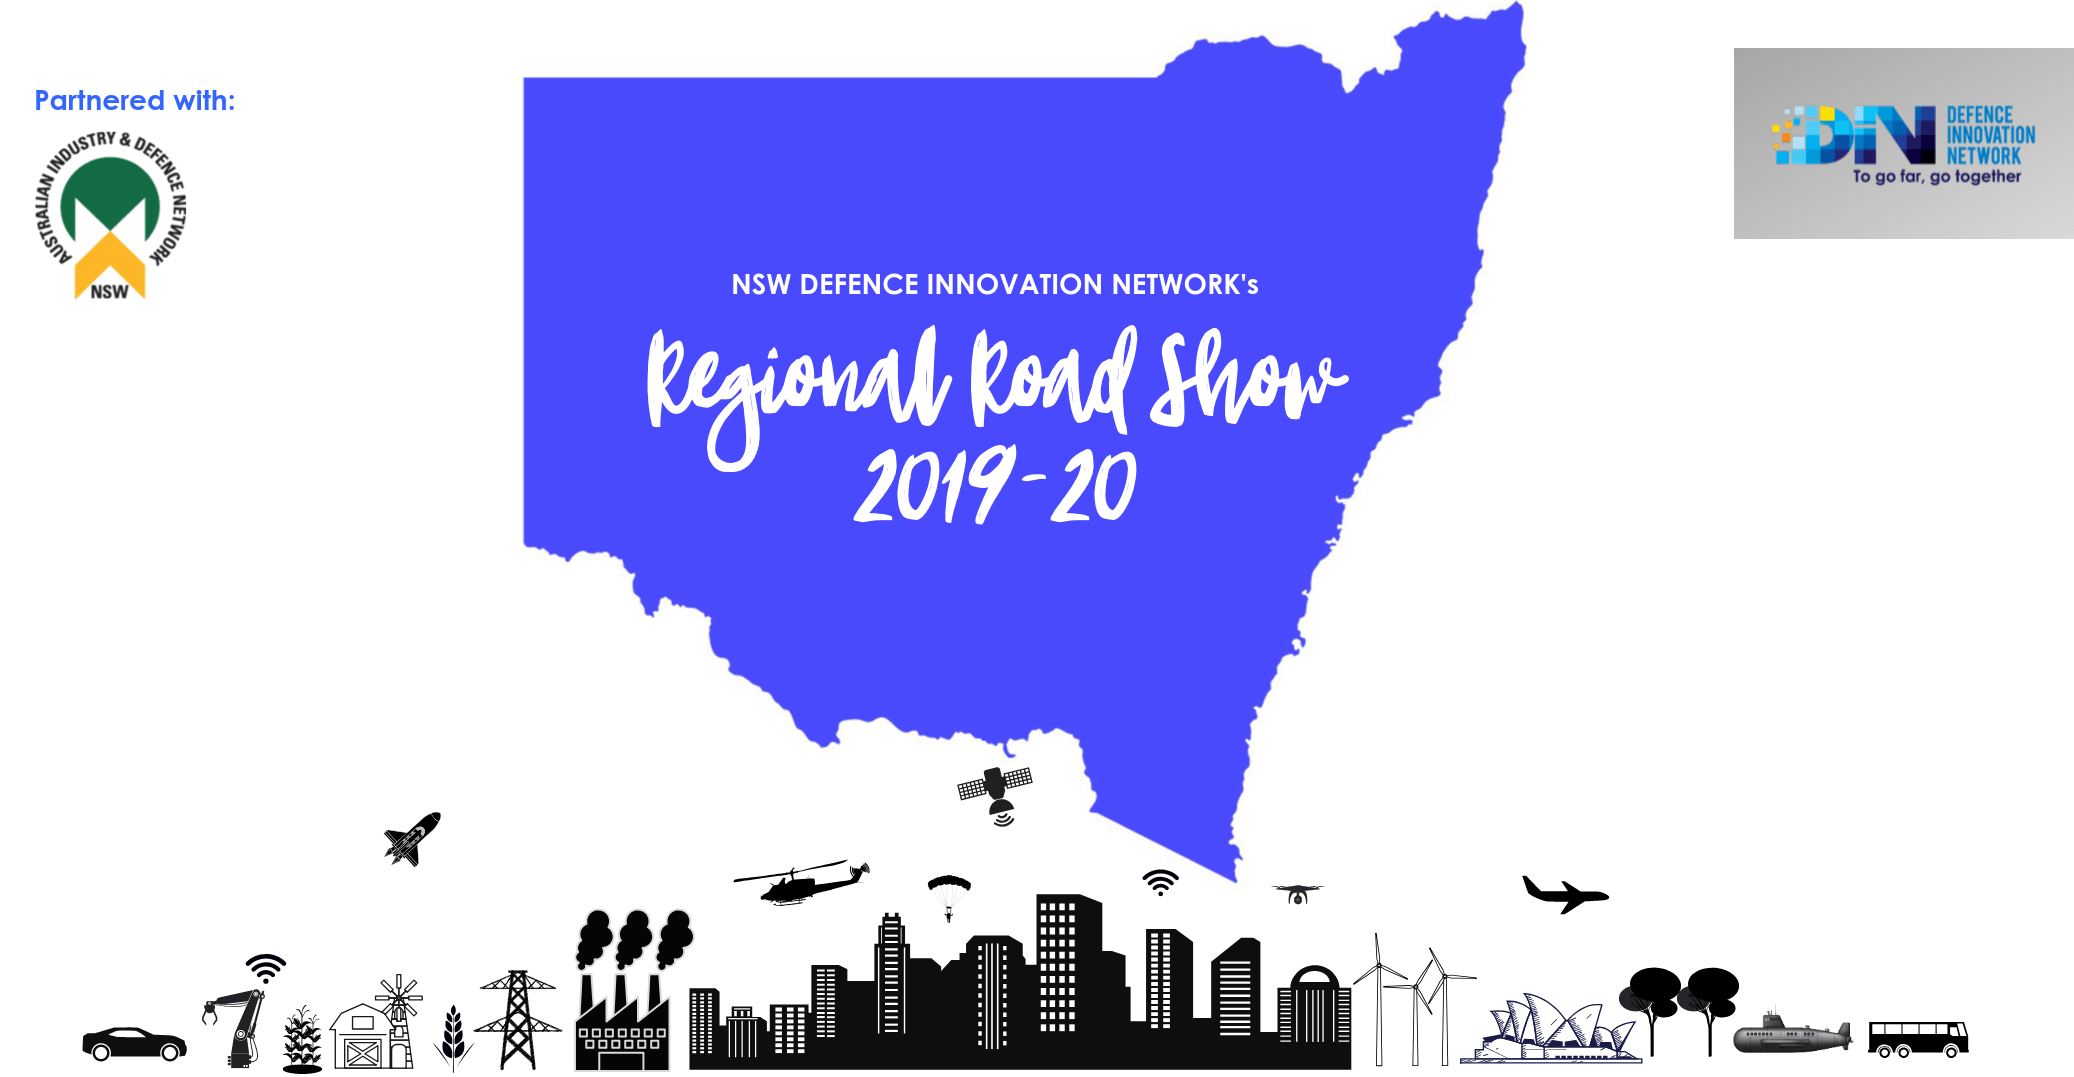 Inaugural NSW Defence Innovation Network's Regional Road Show 2019-20